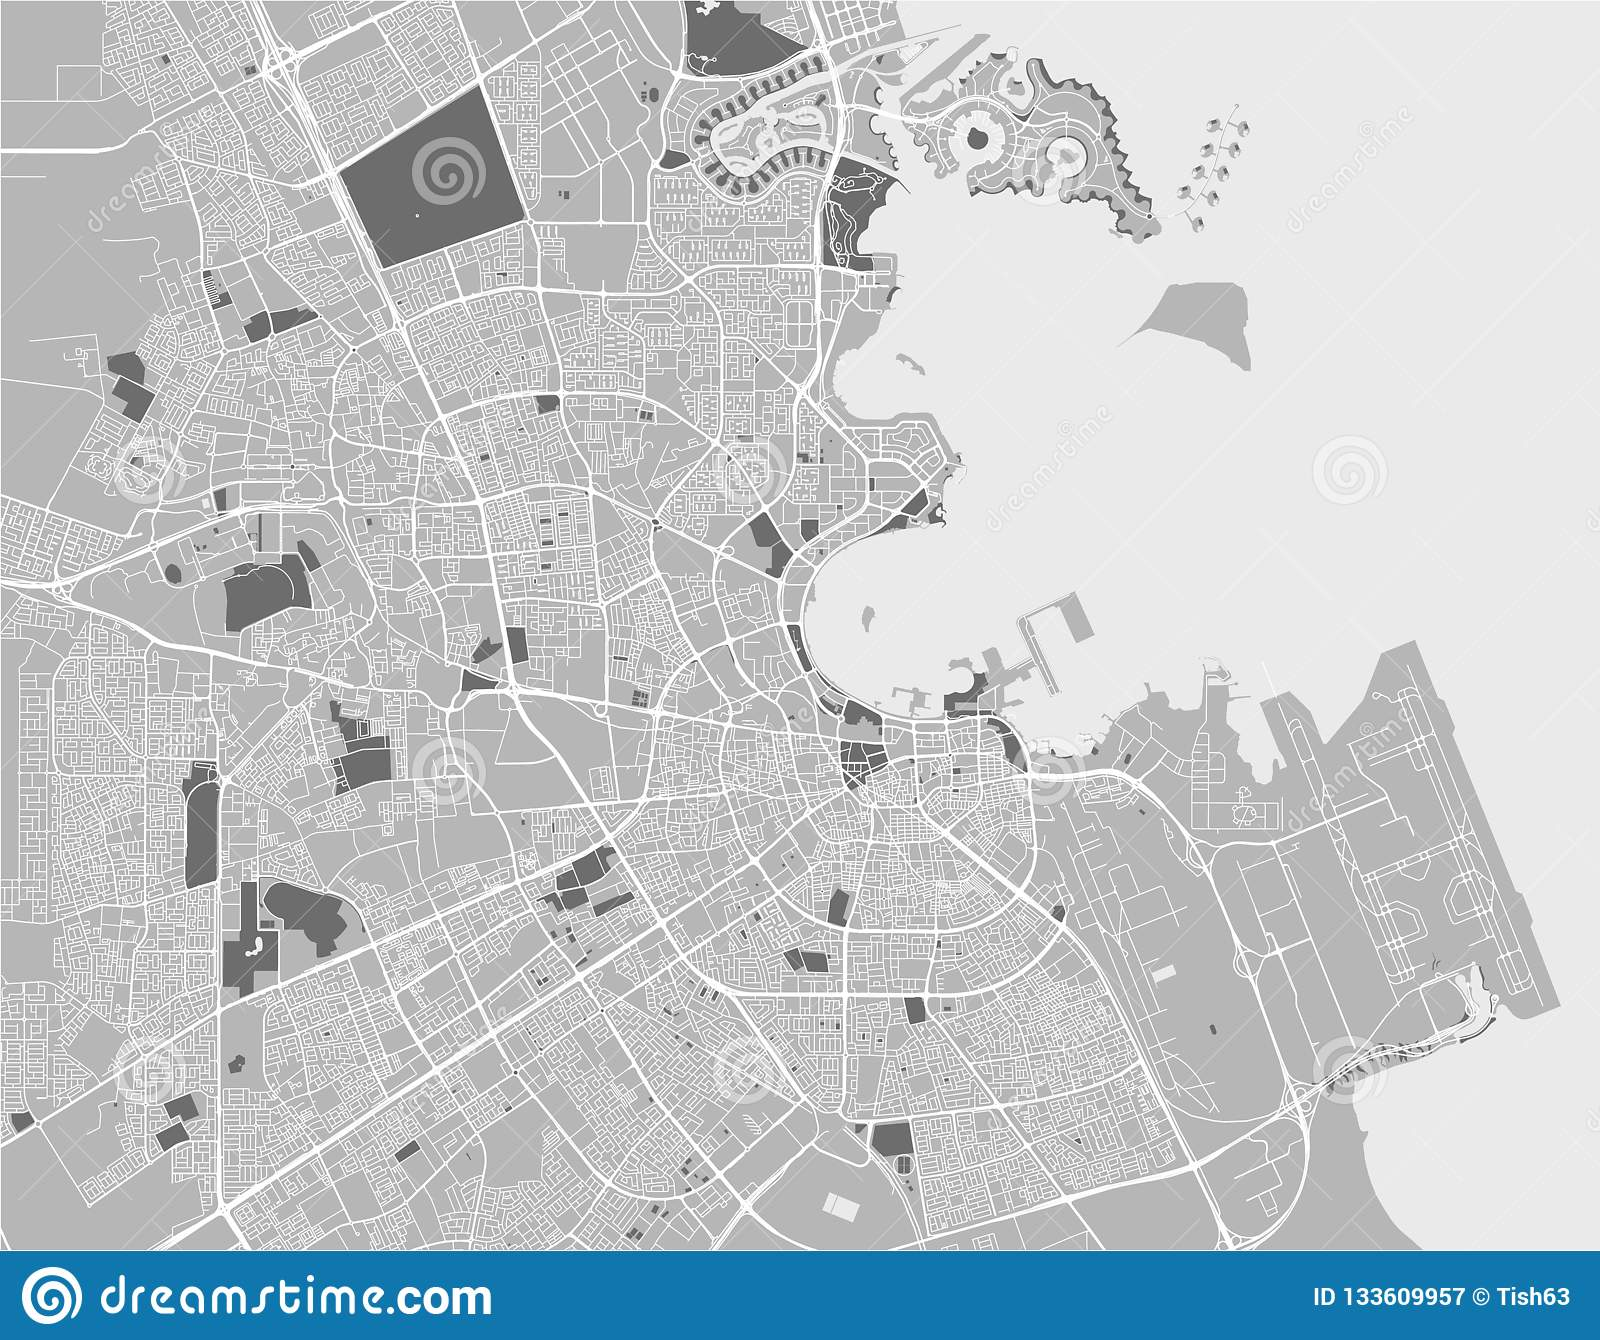 Map Of The City Of Doha, Qatar Stock Illustration ... Doha Map on tanzania map, united arab emirates map, al udeid air base, middle east map, dead sea map, bahrain map, doha corniche, qatar airways, dushanbe map, qatar map, riyadh map, sana'a map, al jazeera, ankara map, kuwait map, abu dhabi, education city, world map, abu dhabi map, manama map, dubai map, mosul map, medina map, kuwait city, doha international airport, damascus map, jerusalem map, souq waqif, baghdad map, aspire tower,